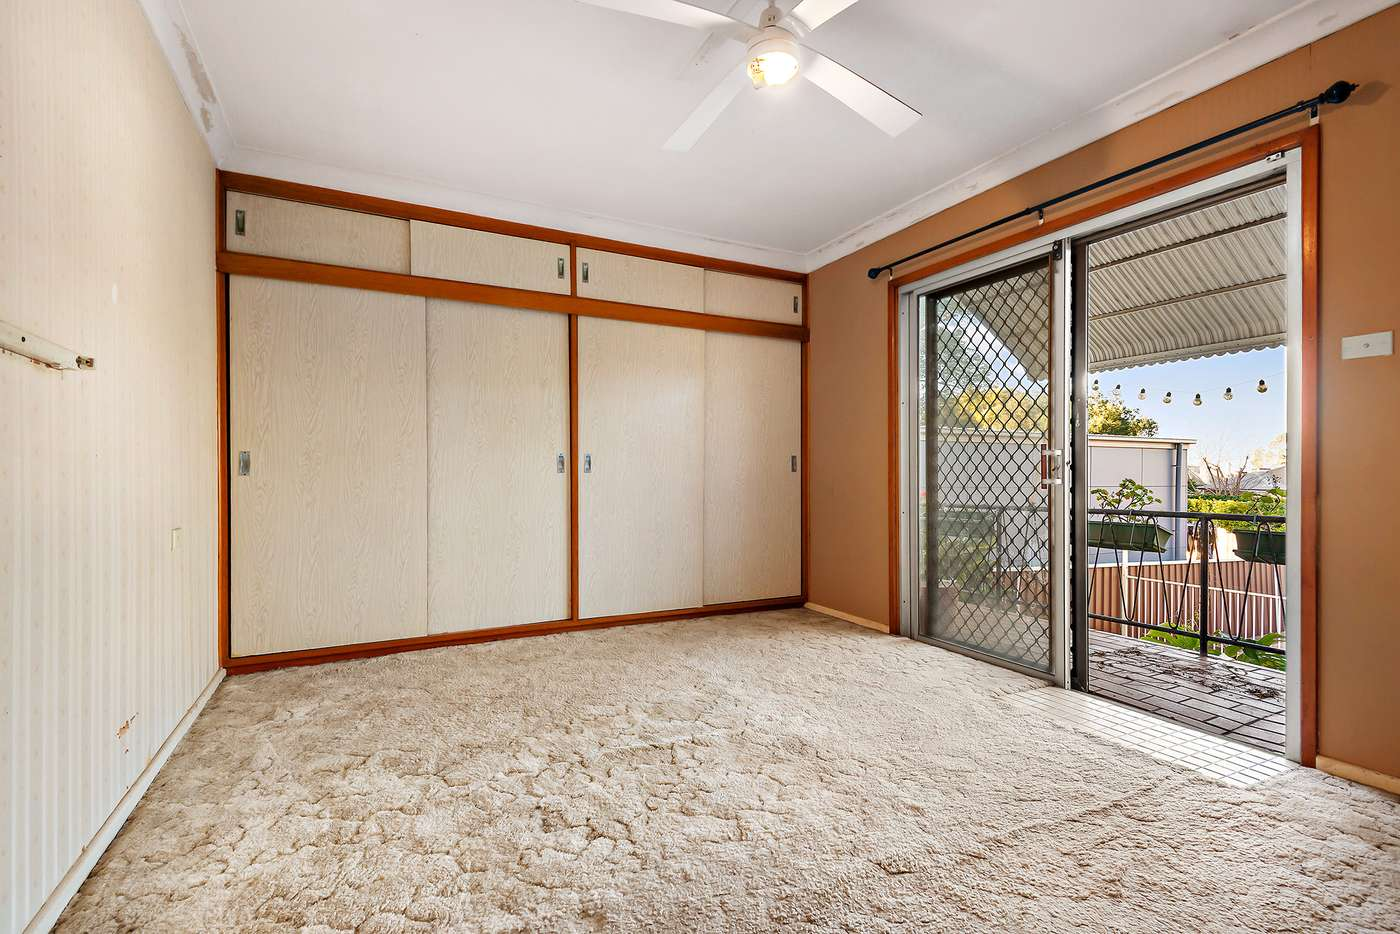 Fifth view of Homely house listing, 15 Bridge Street, Waratah NSW 2298